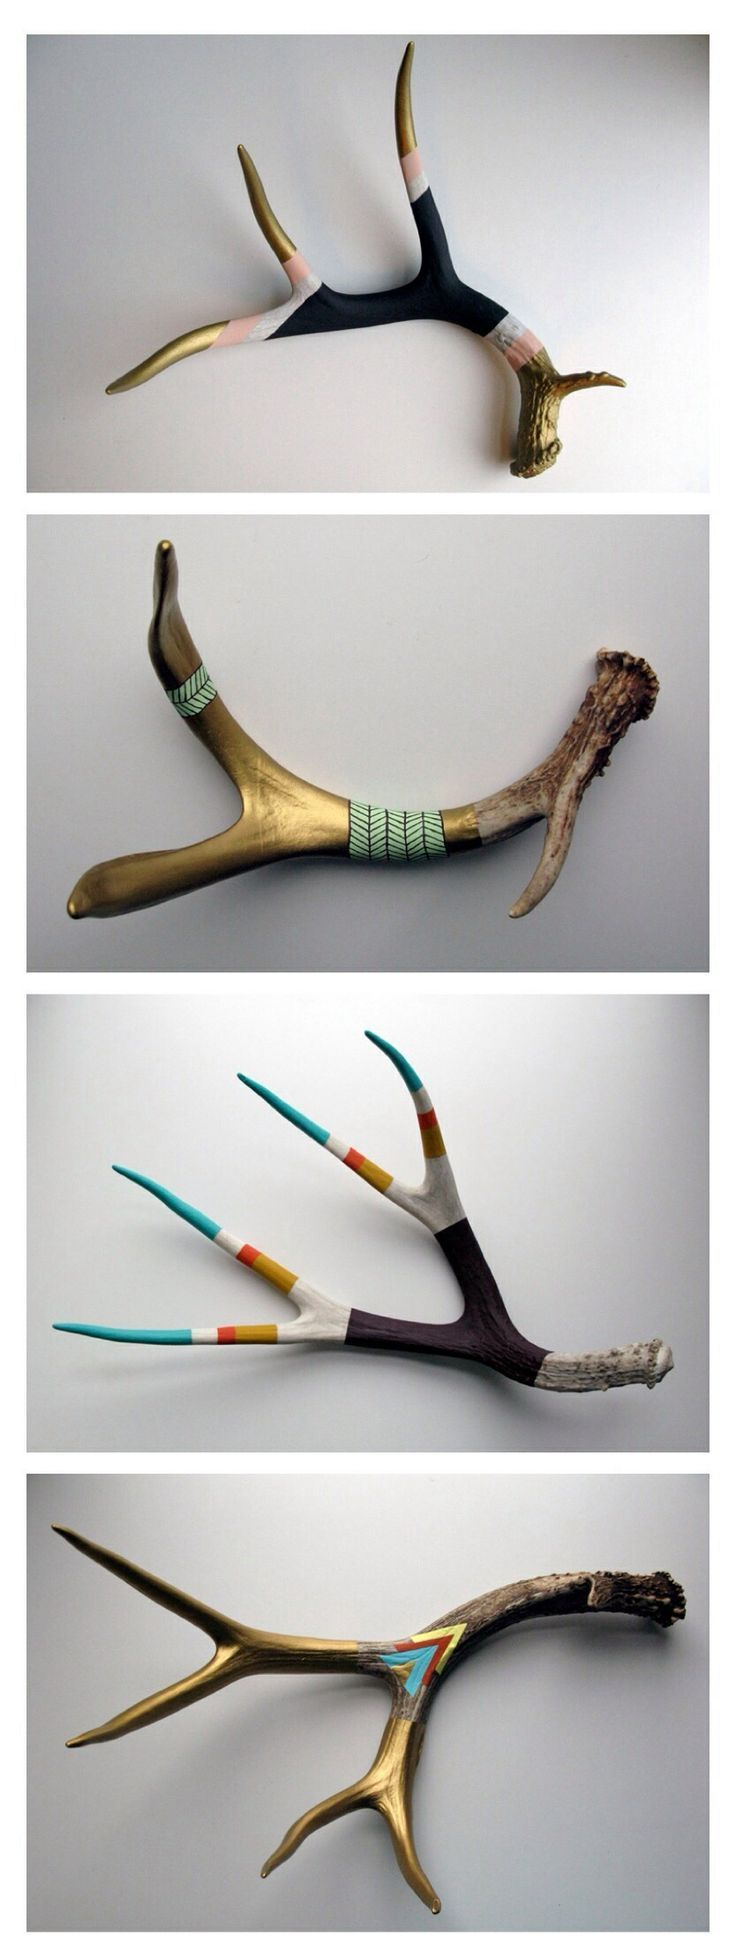 Painted deer antlers southwest wall decor - Modern Southwestern Decor & Design Ideas